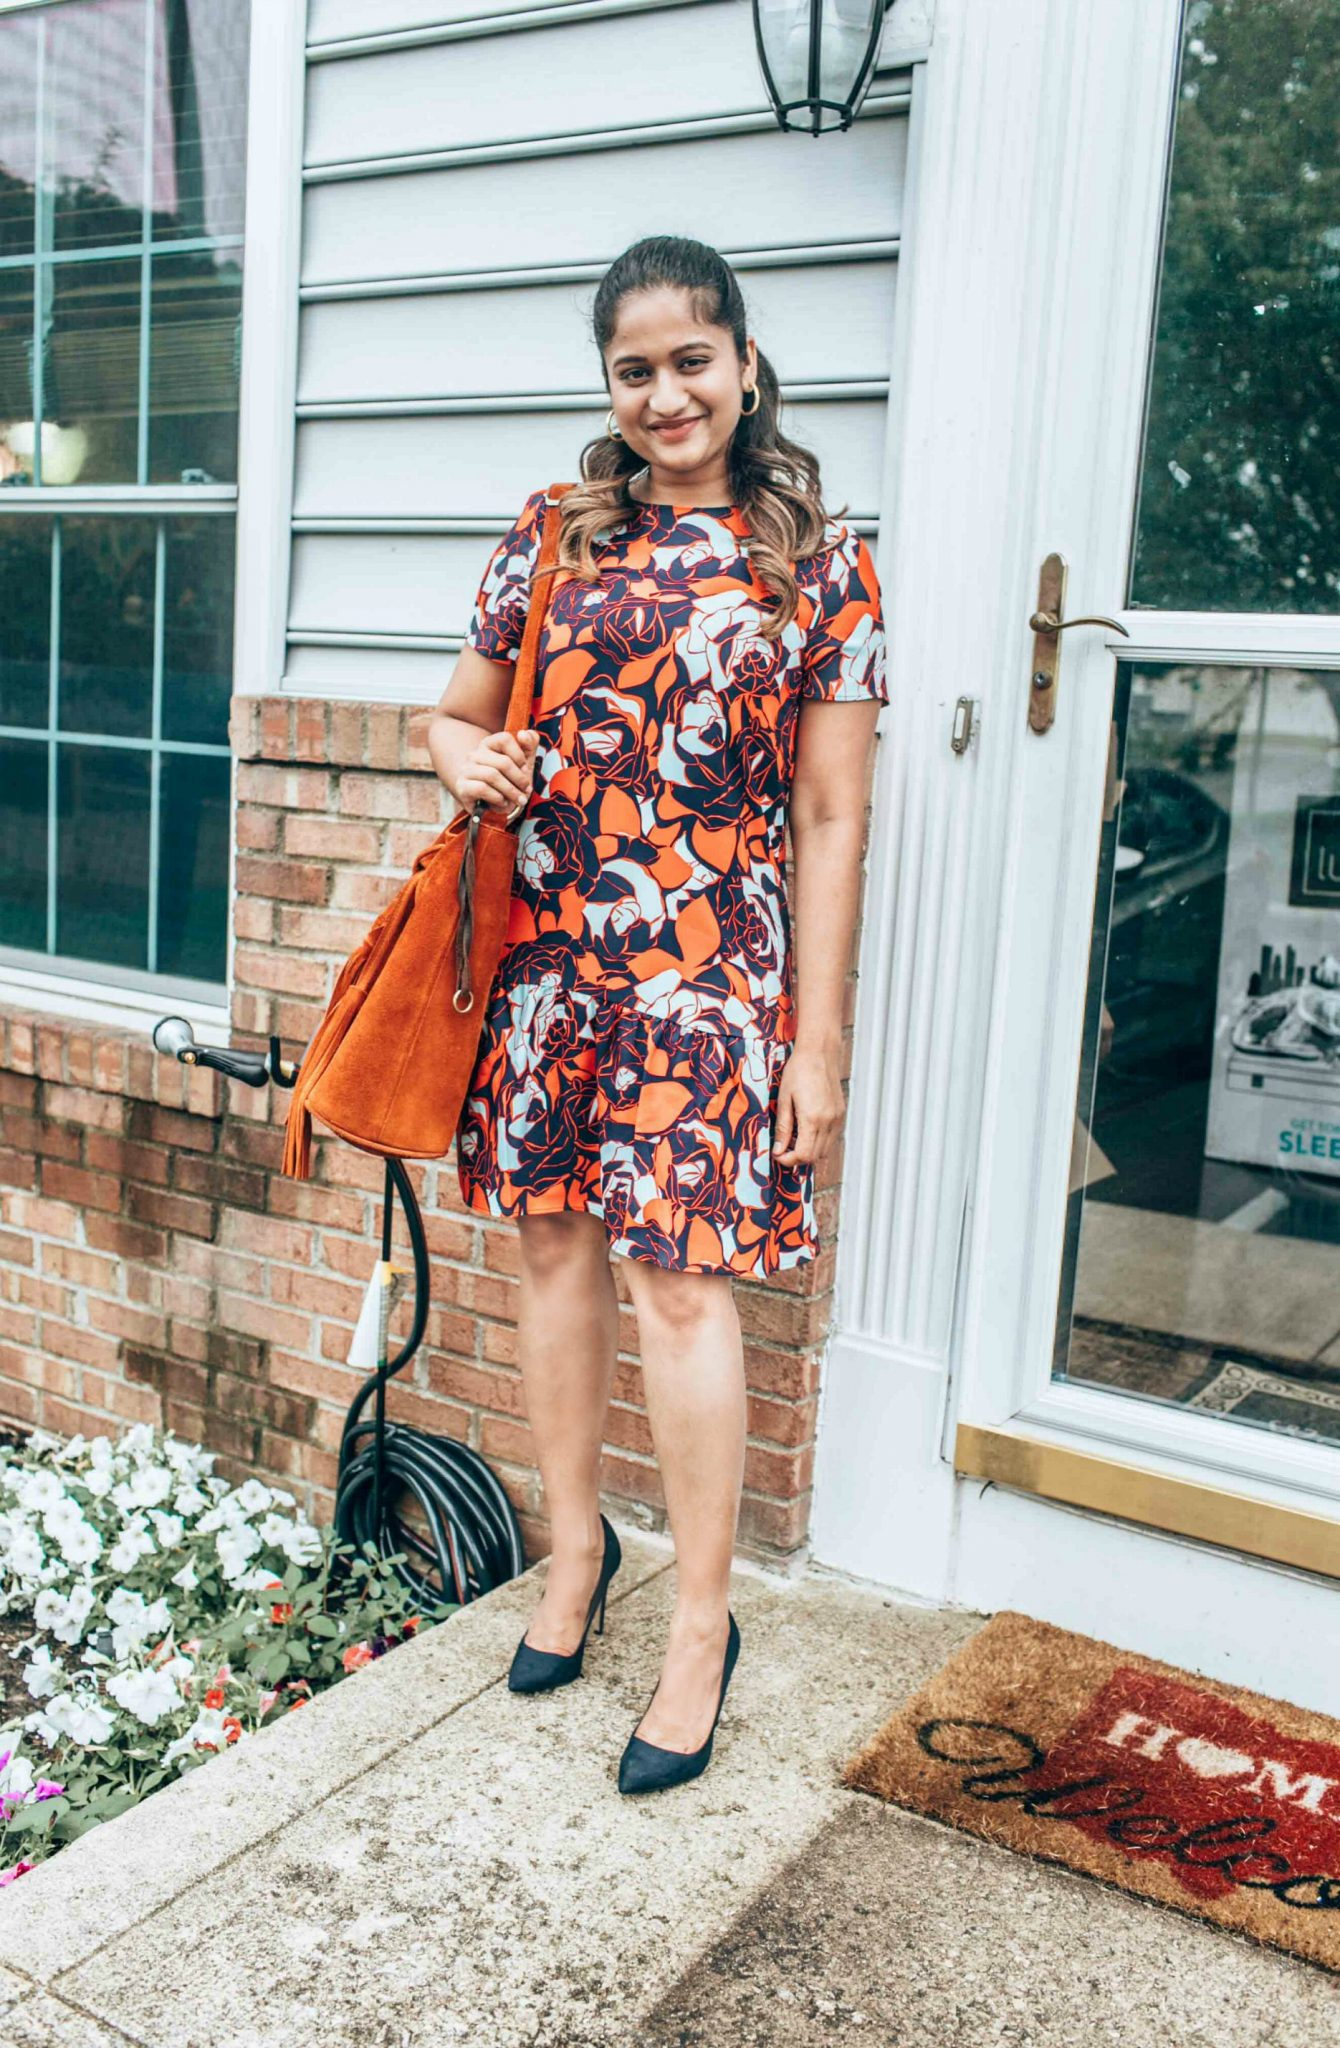 Short Sleeve Ruffle Hem Dress HALOGEN - Nordstrom Anniversary Sale top picks featured by popular Ohio modest fashion blogger, Dreaming Loud